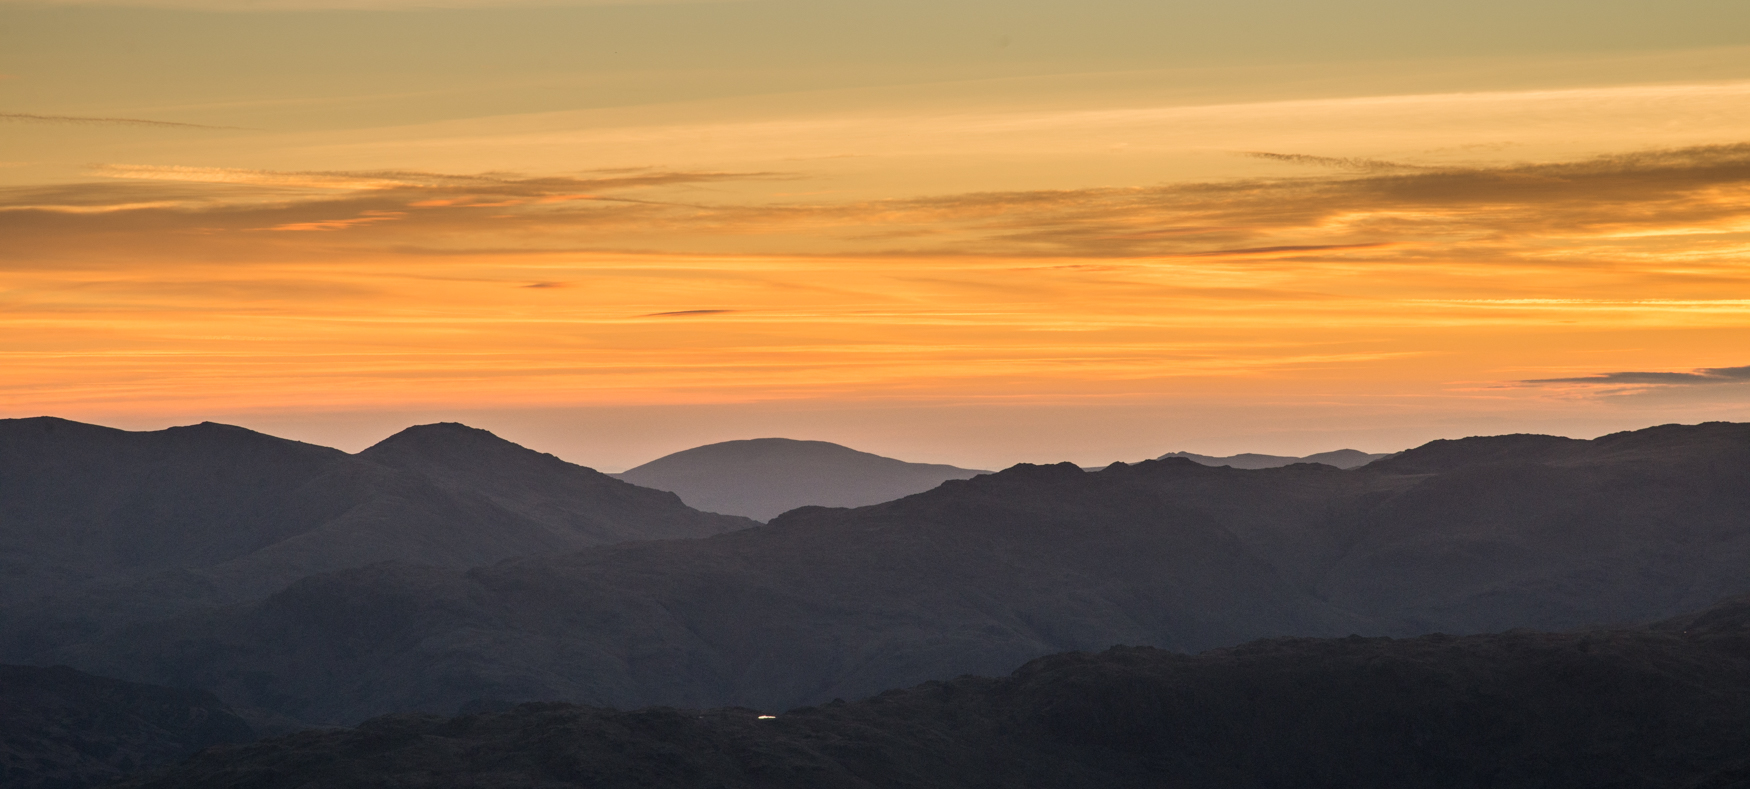 Looking westwards to the setting sun from the Helvellyn ridge